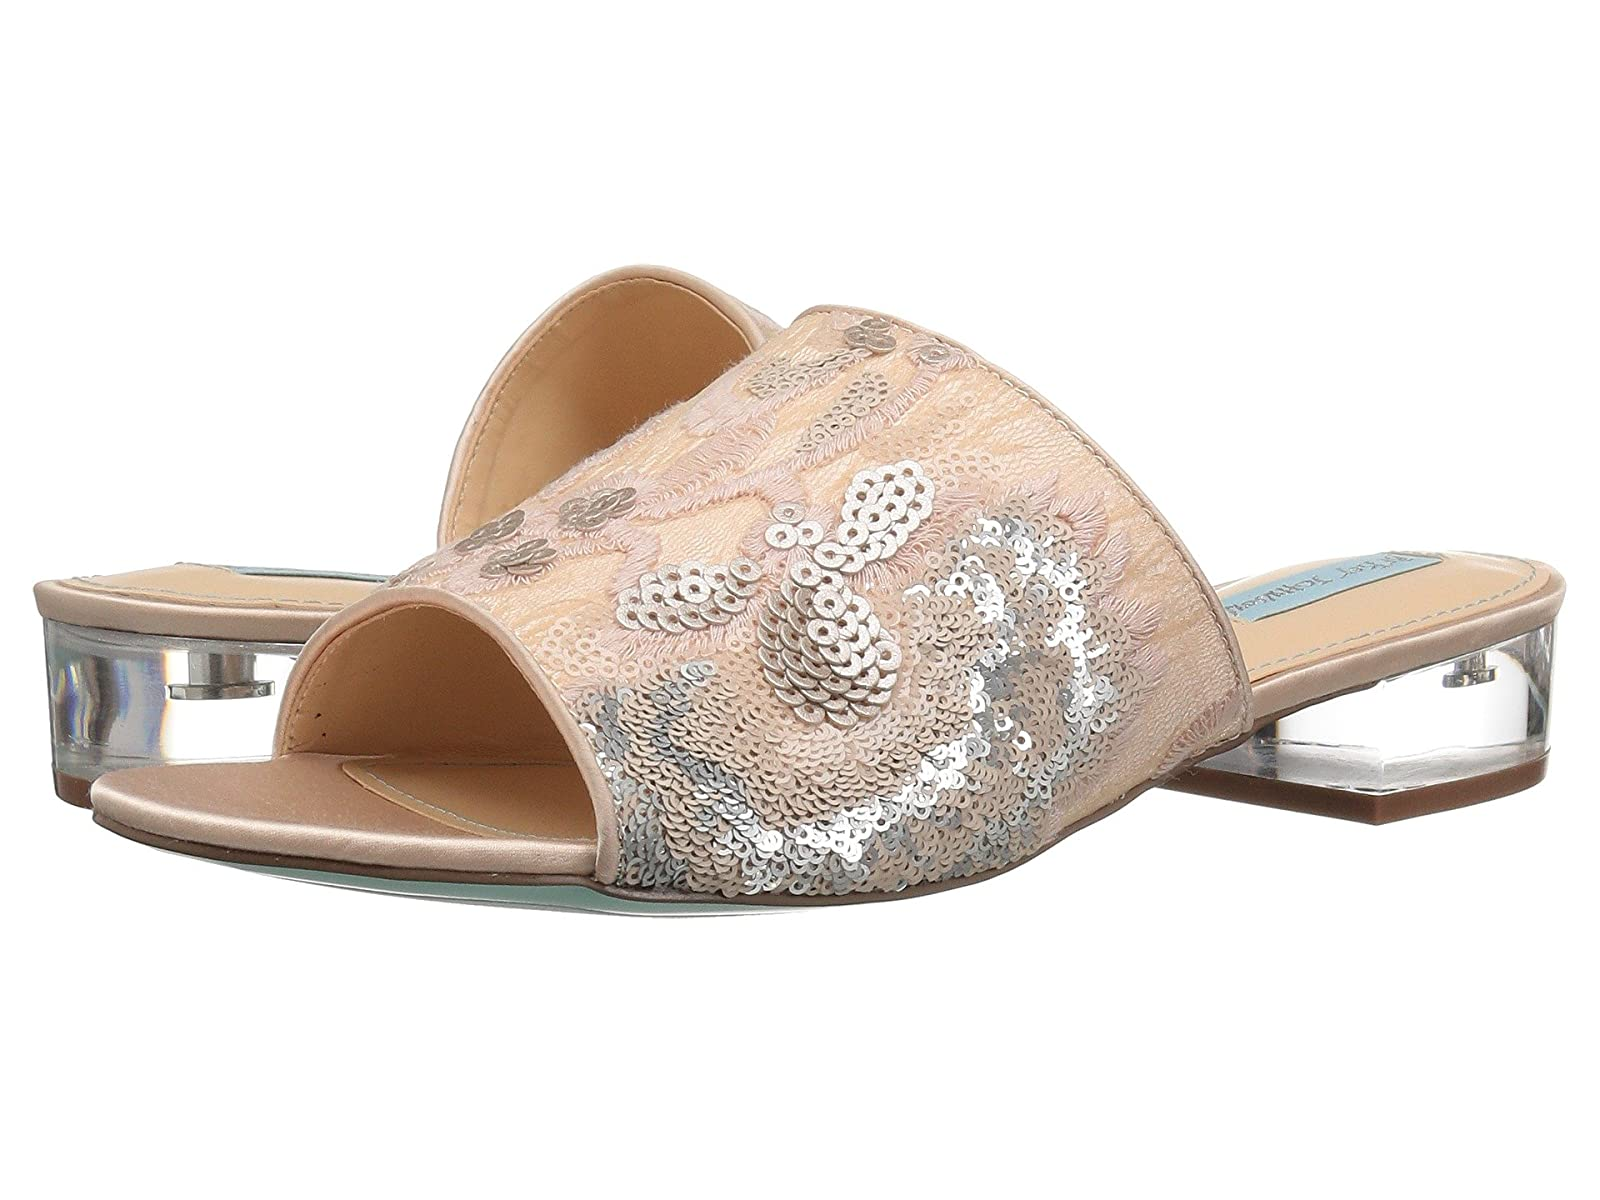 Blue by Betsey Johnson RyderCheap and distinctive eye-catching shoes